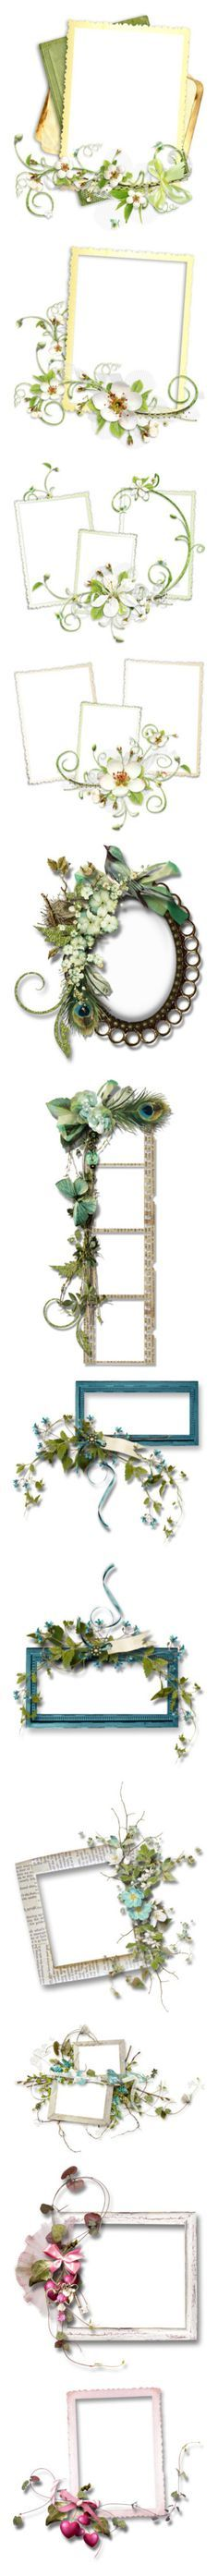 """""""Fancy Frames"""" by infracti-angelus ❤ liked on Polyvore featuring frames, backgrounds, borders, fillers, flowers, effects, embellishments, picture frames, detail and ramki"""